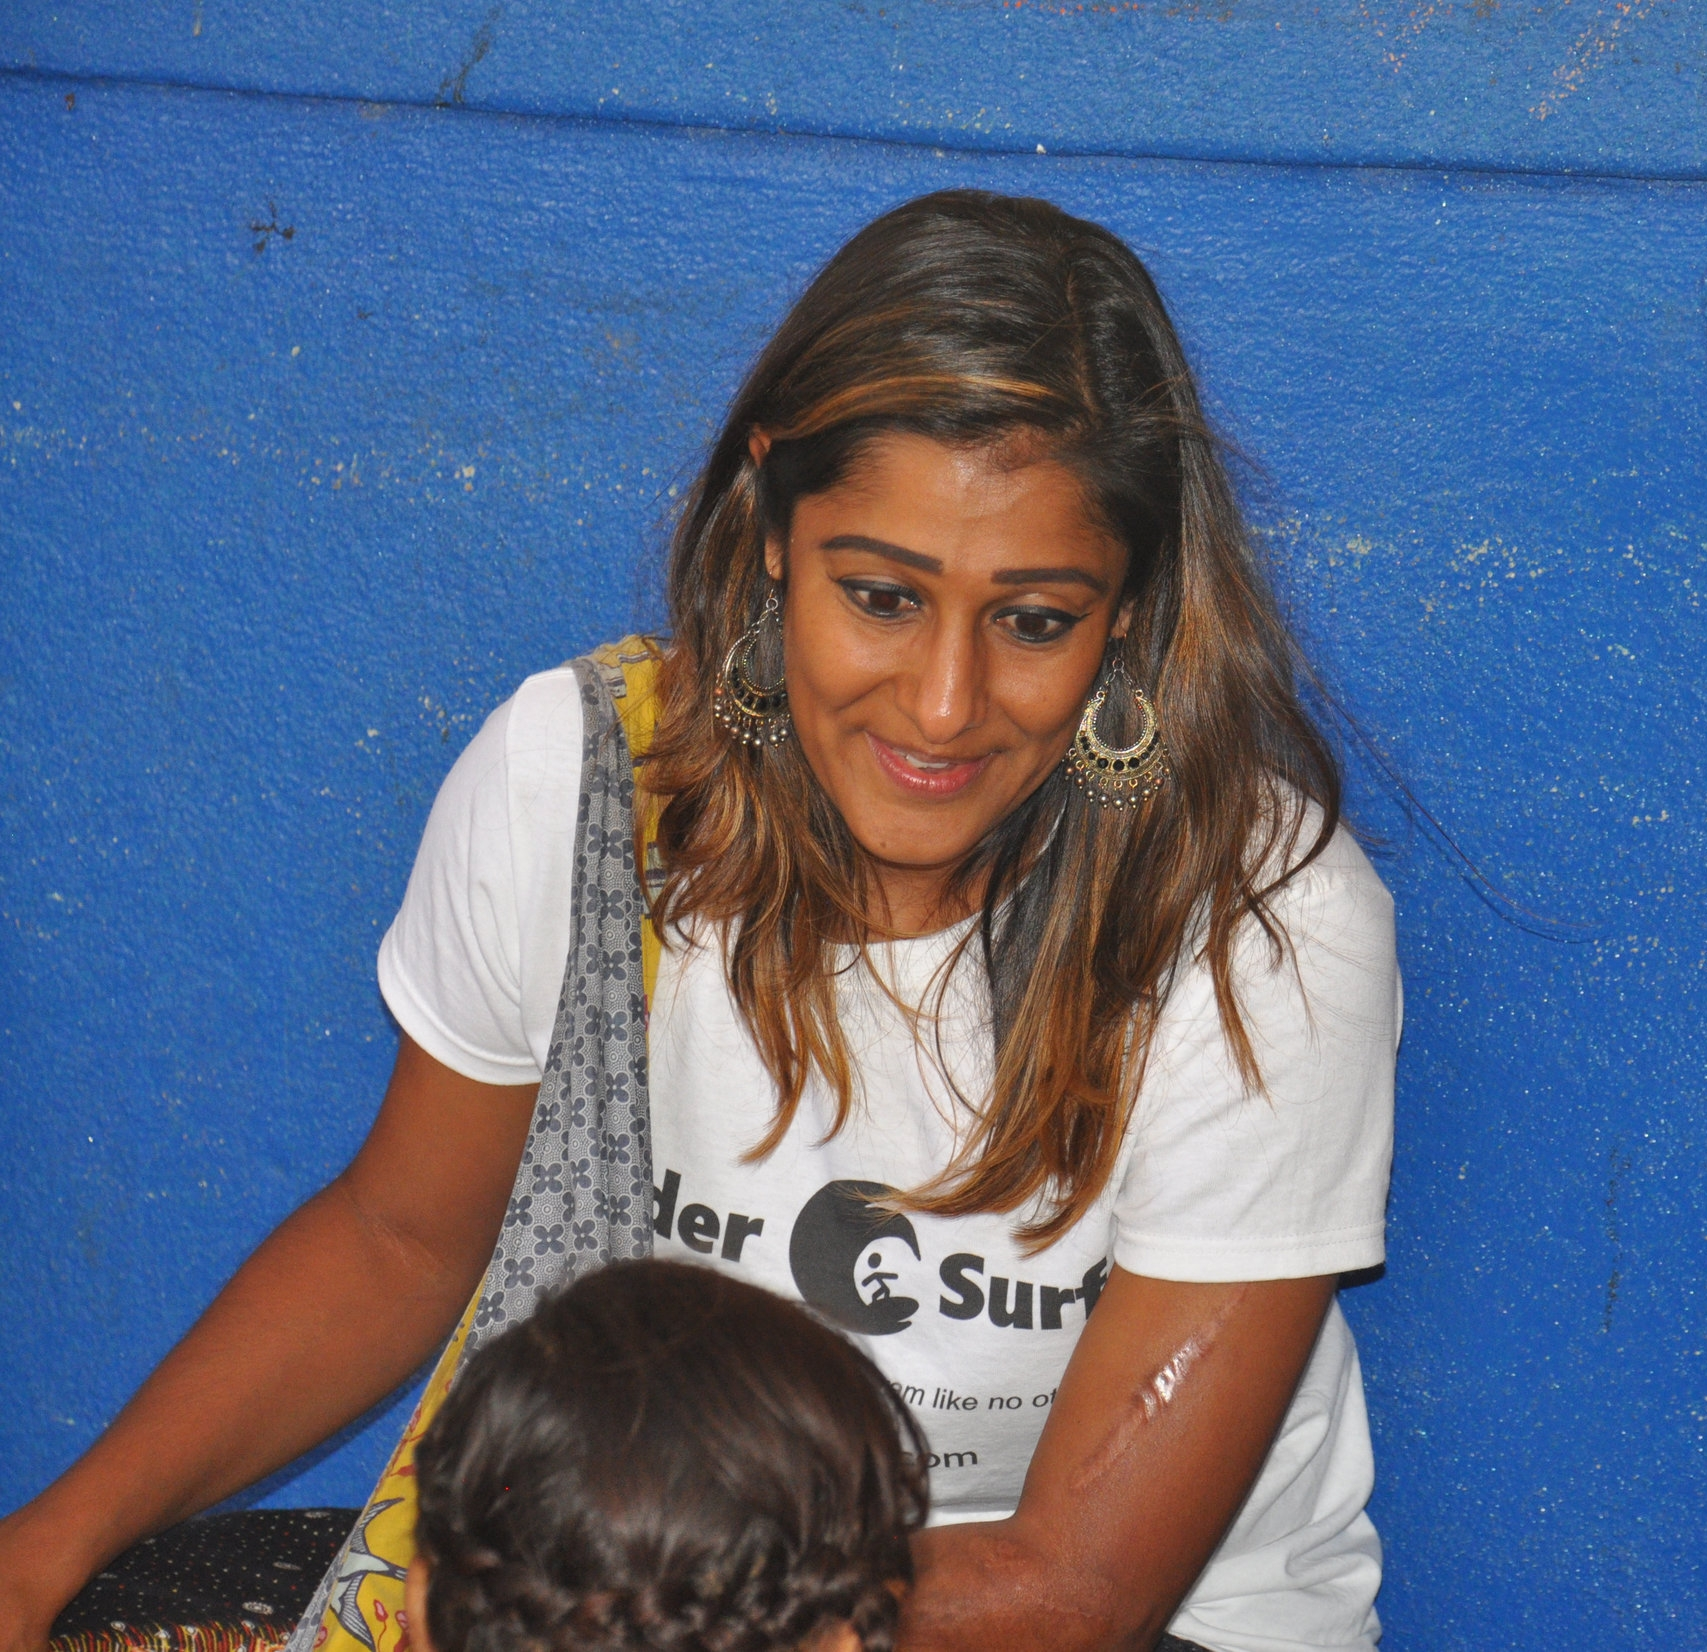 Suhana engaging with a Nicaraguan student during the LeaderSurf humanitarian aid day